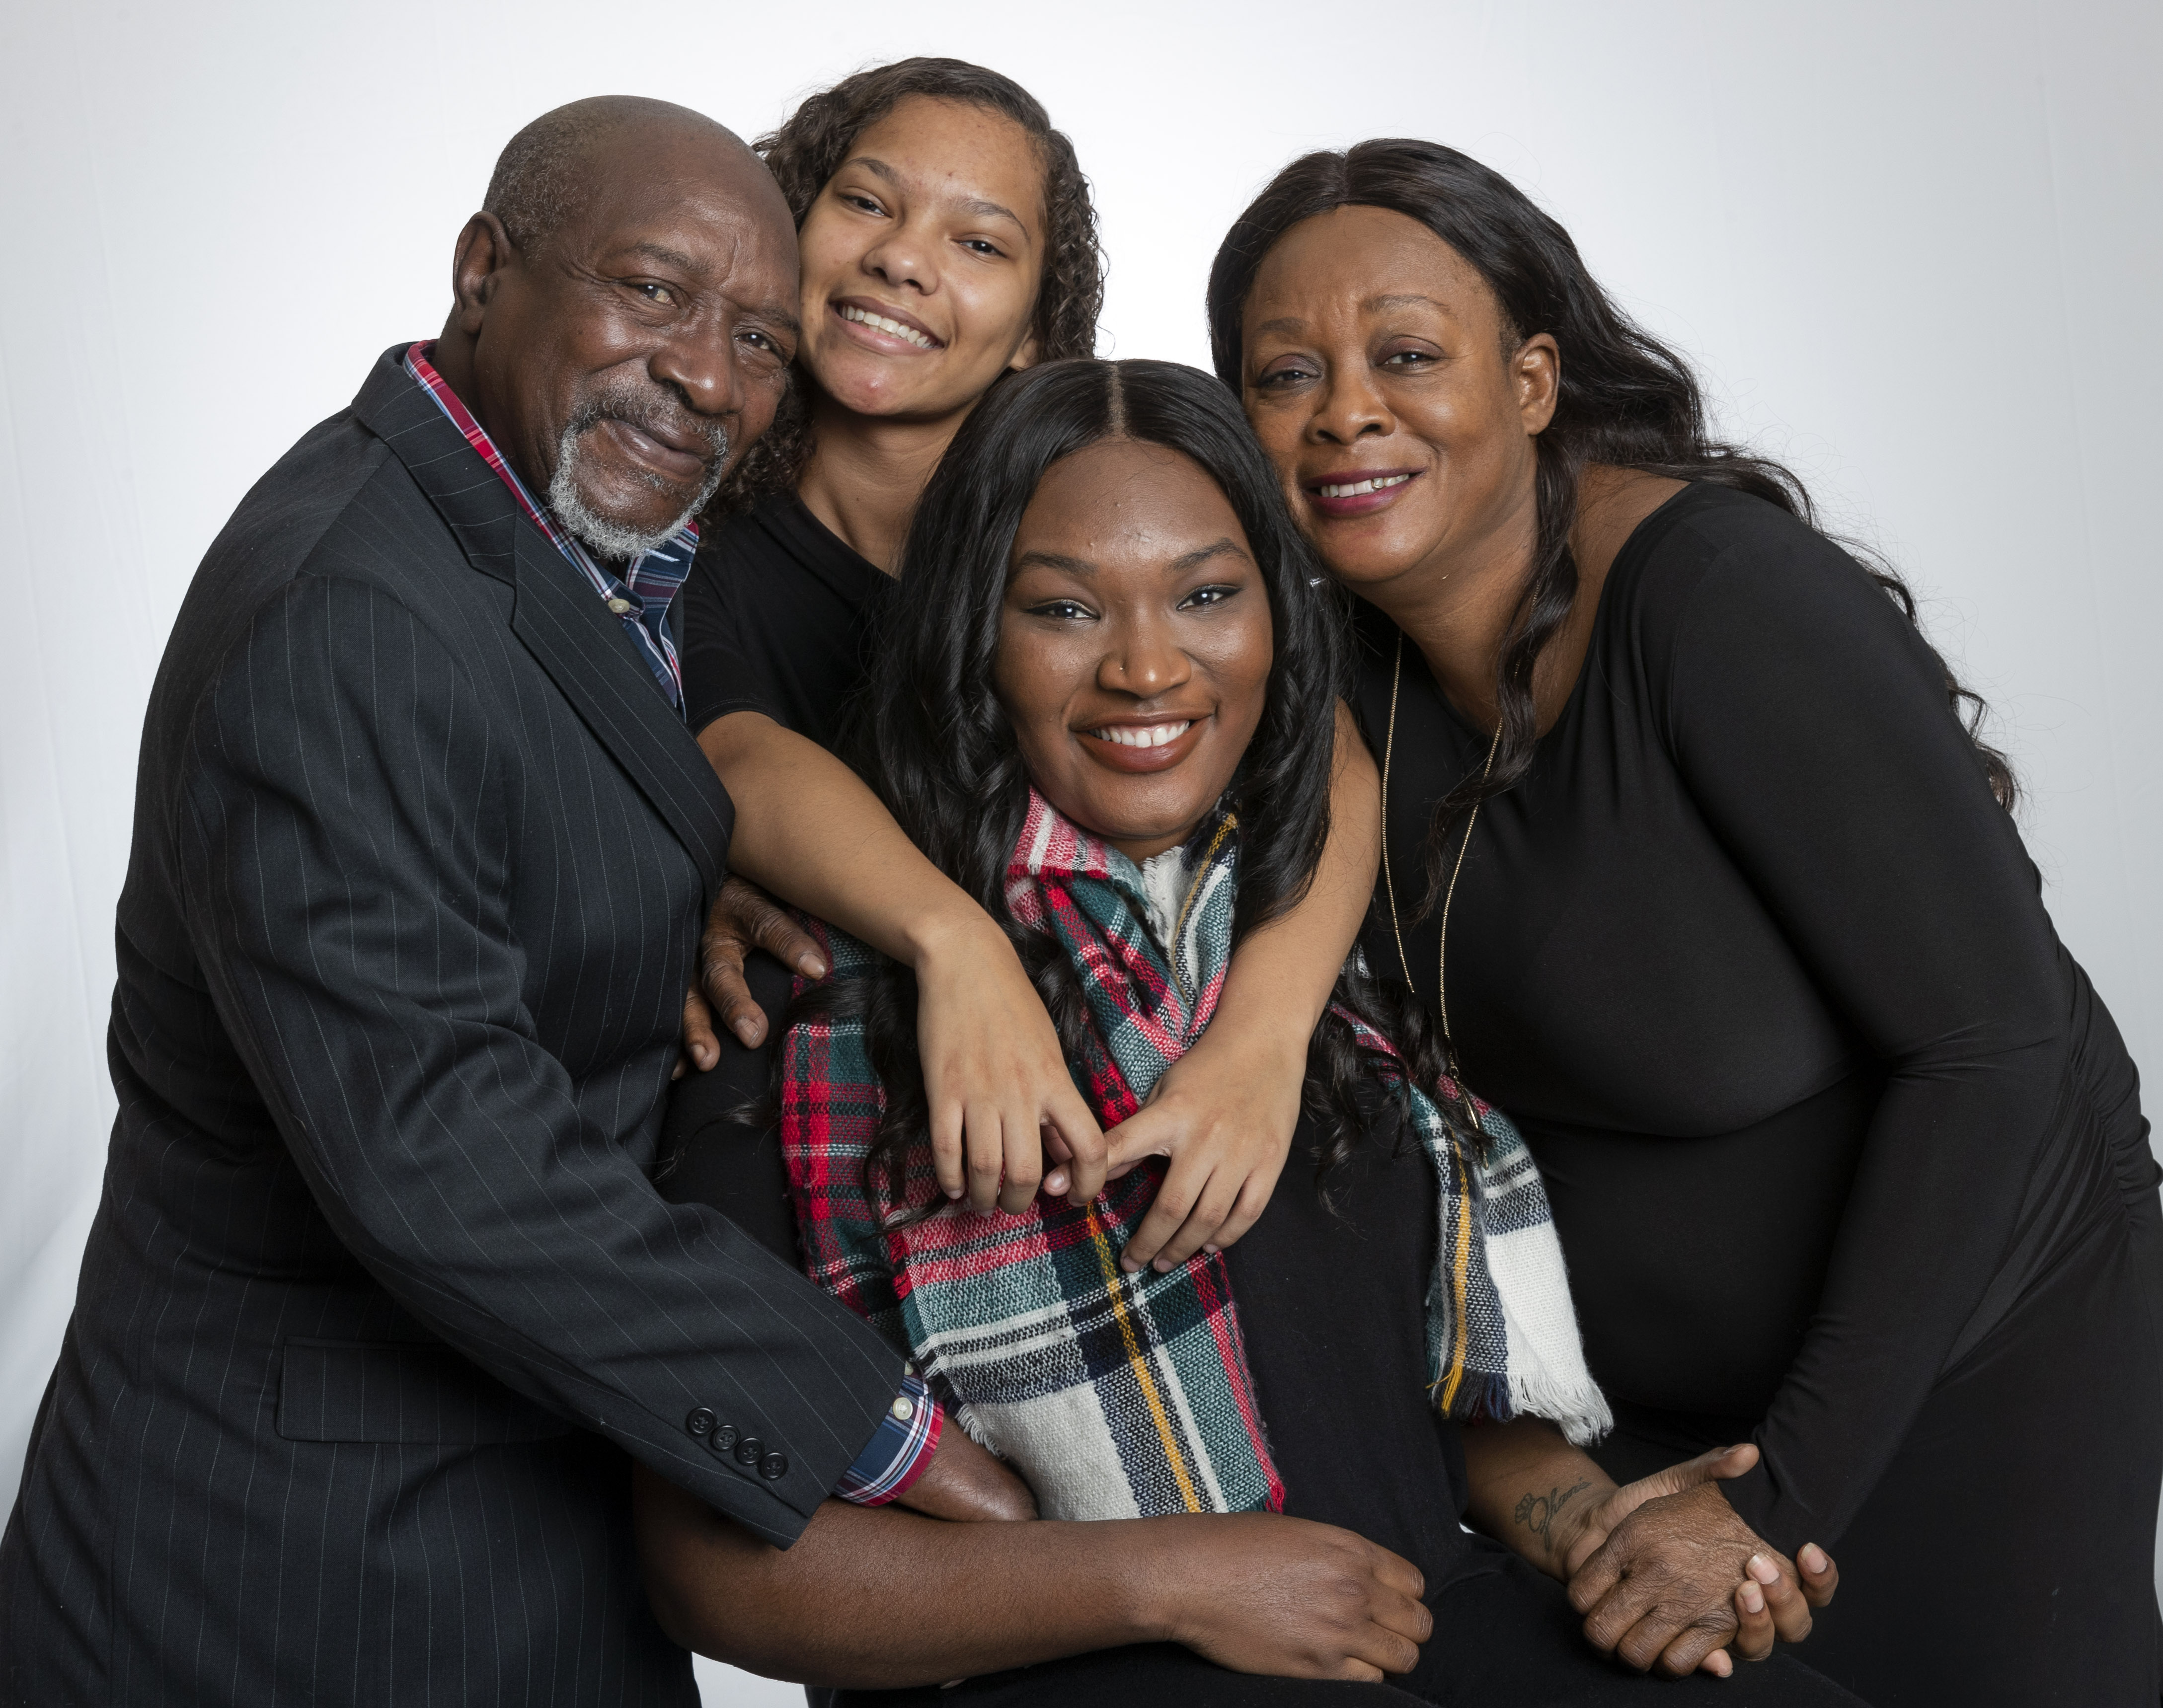 UA Little Rock student Social Work major Mercedes Parker, center, is surrounded by her family, from top left, Chester McCray, Taylor Houck and Ruby Dunn. Parker, who will graduate in December, is the first person in her family to get a college degree.